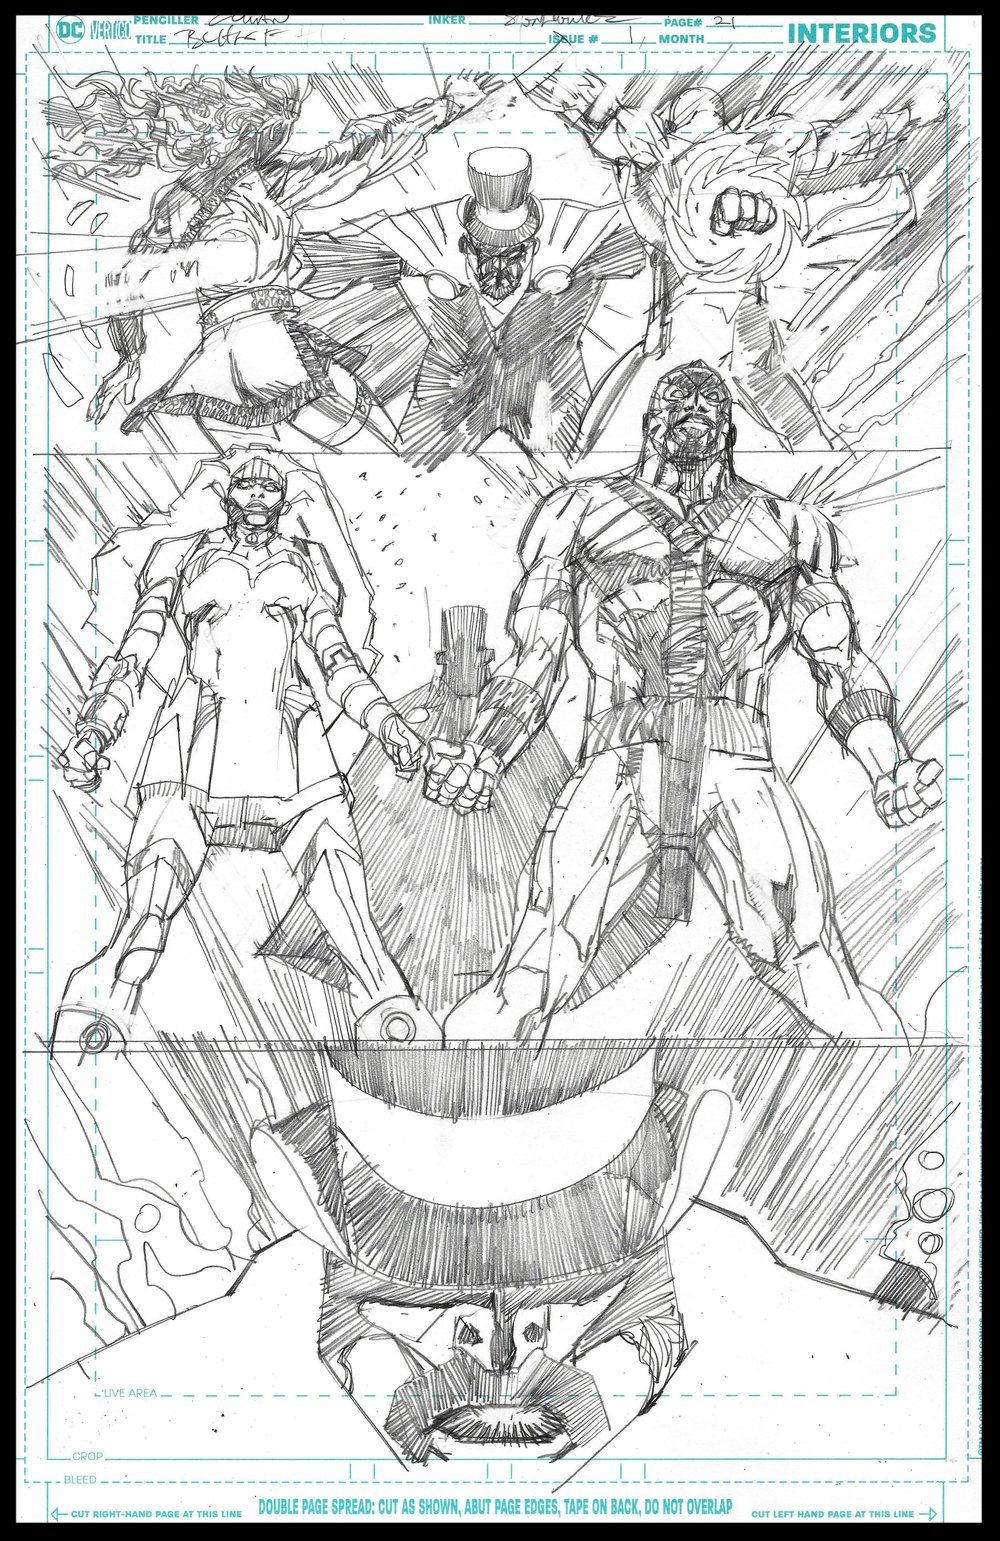 Black Lightning-Hong Kong Phooey #1 - Page 21 - Pencils